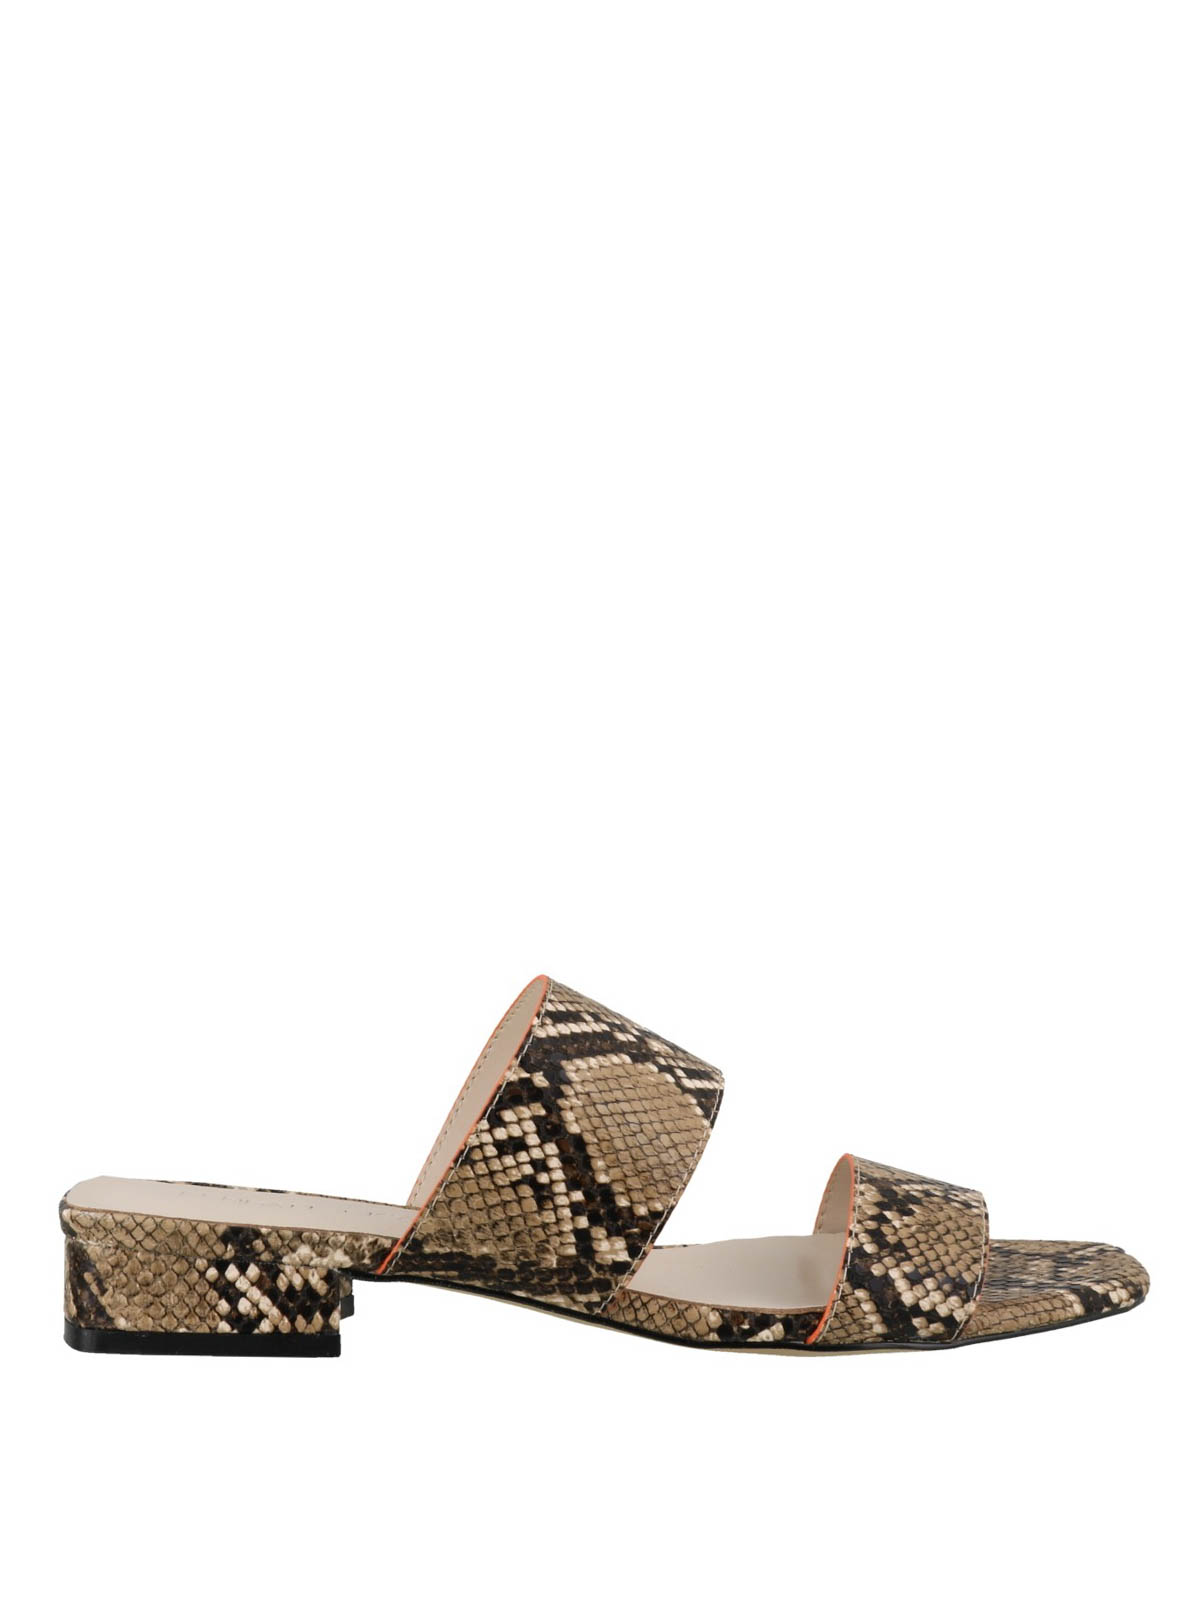 Kendall + Kylie KAHLIE SNAKE PRINTED LEATHER SANDALS